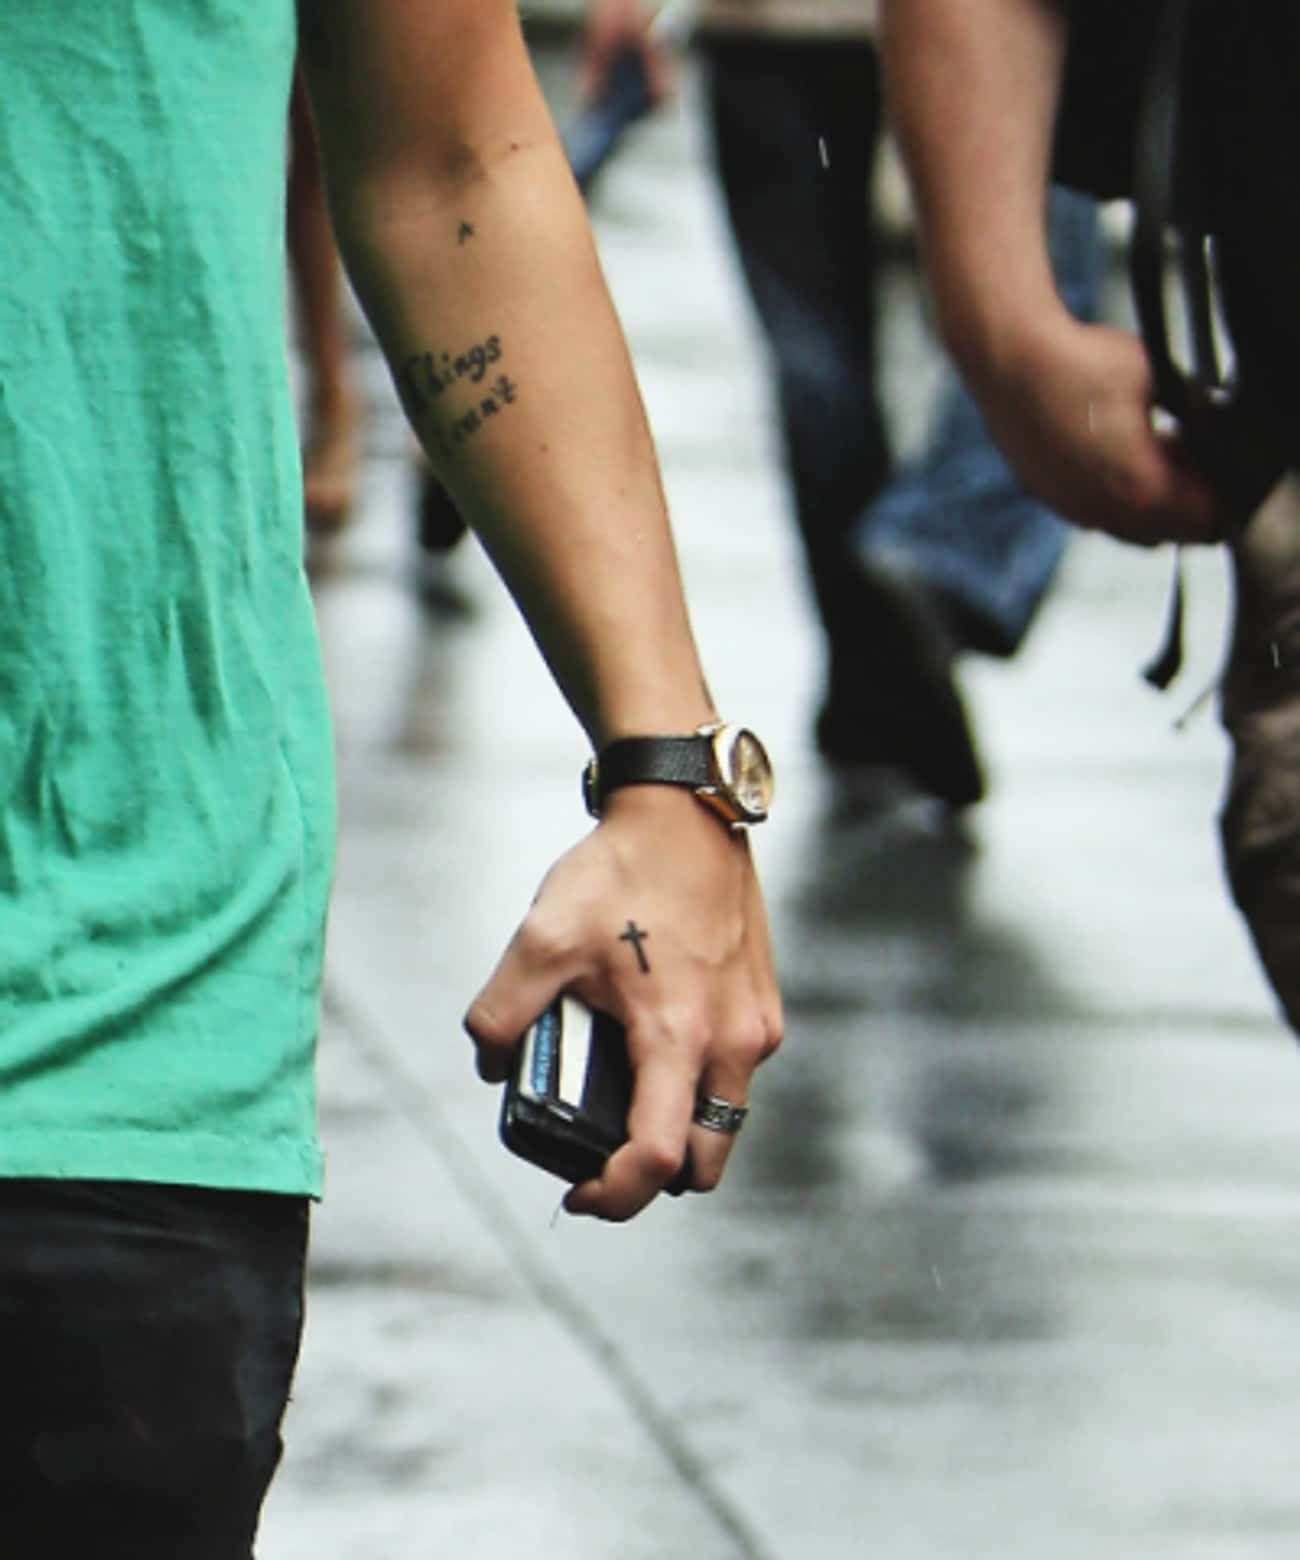 Small Cross Tattoo is listed (or ranked) 4 on the list One Direction's Harry Styles and His (Over 40!) Tattoos